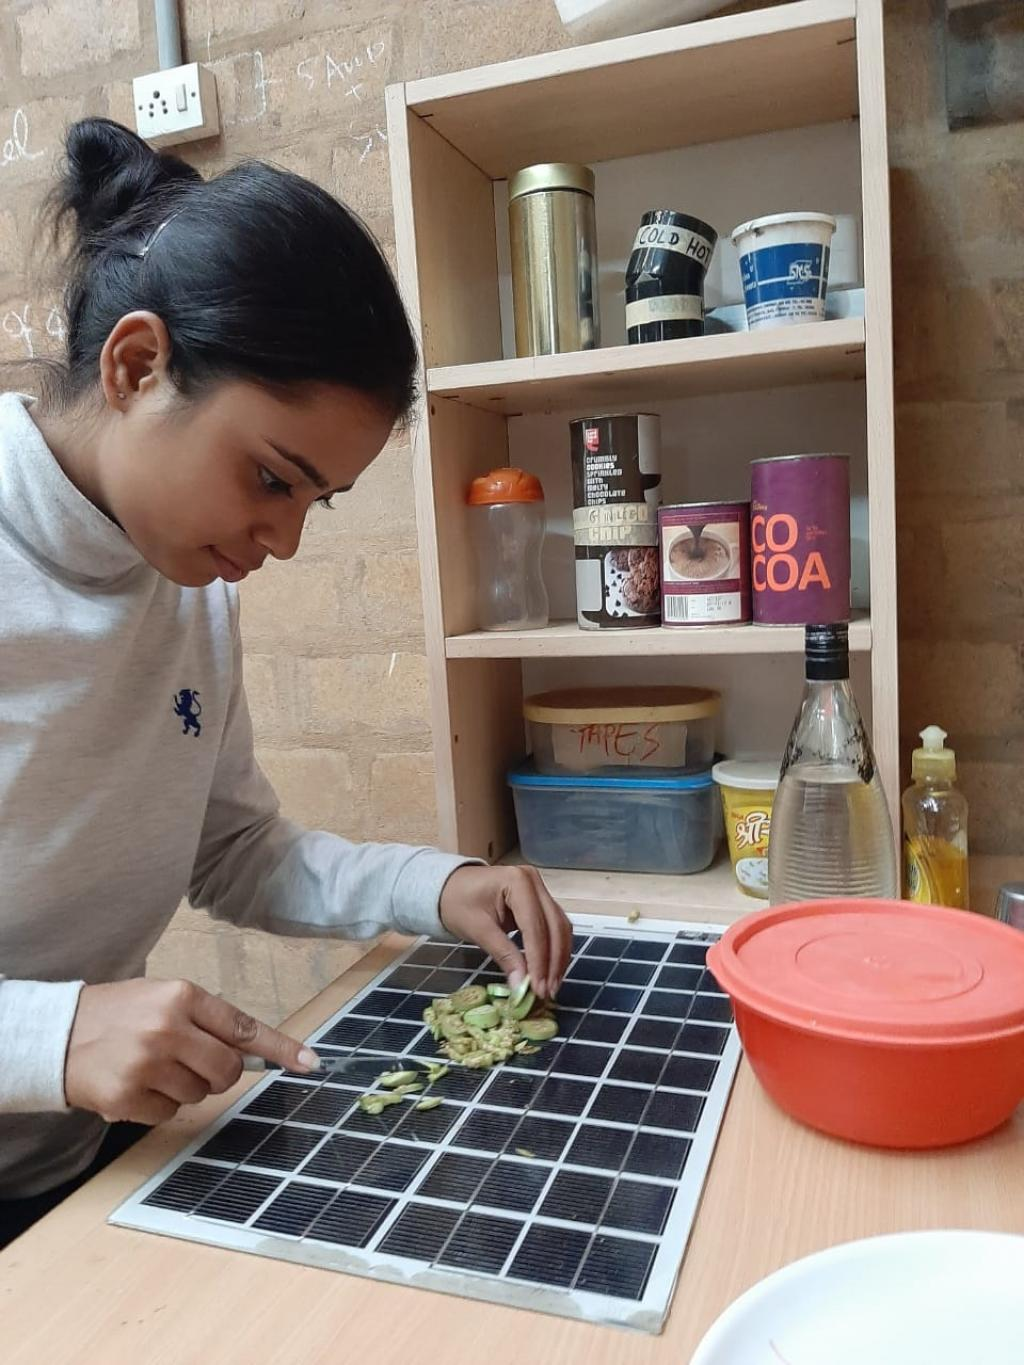 An EoL PV being used as a chopping board. Photo: Henna